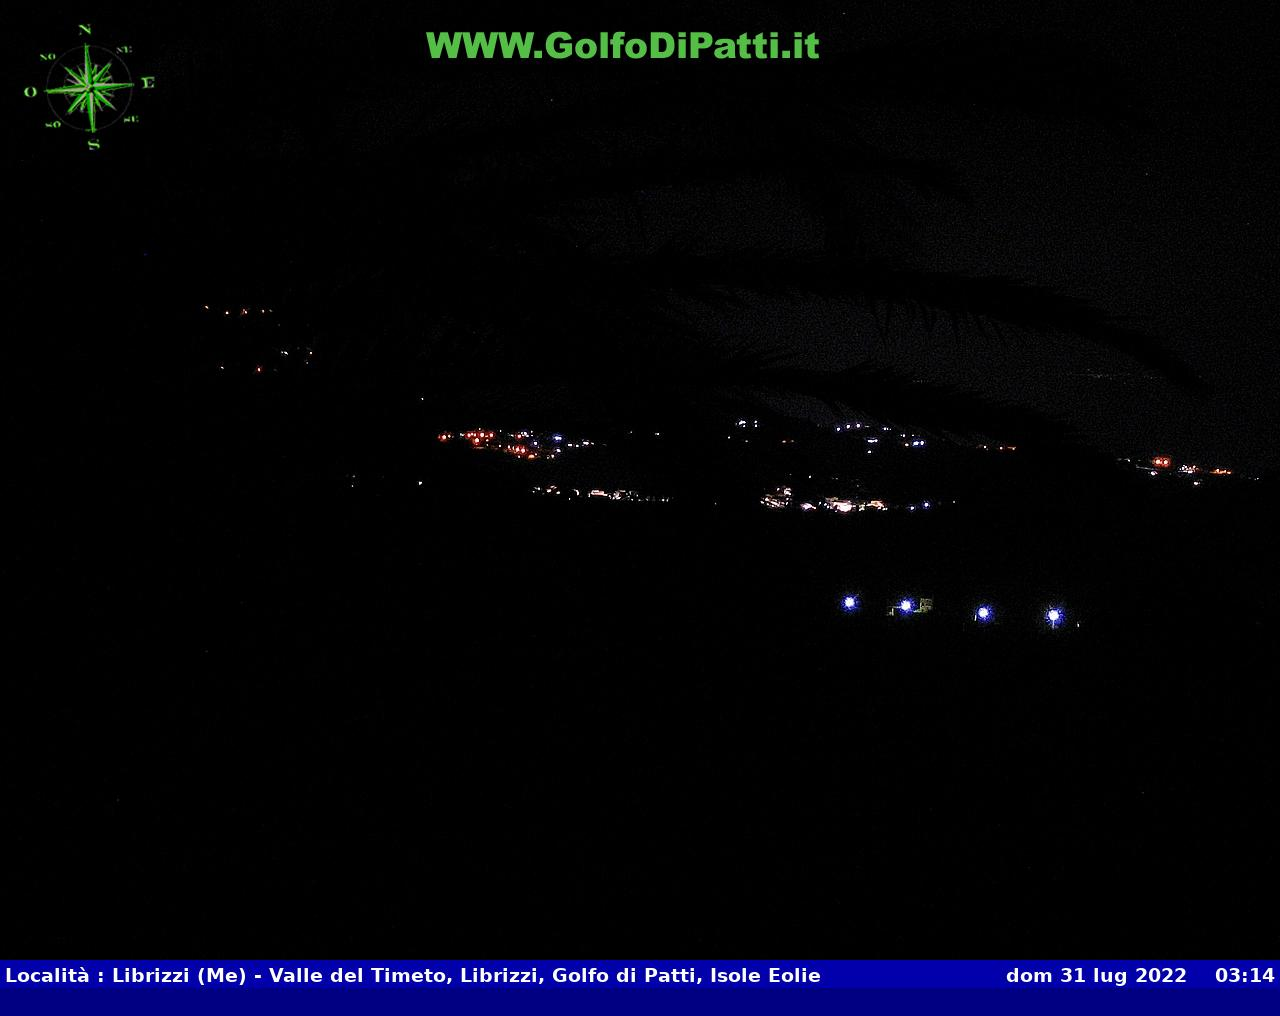 Webcam Librizzi - GolfoDiPatti.it